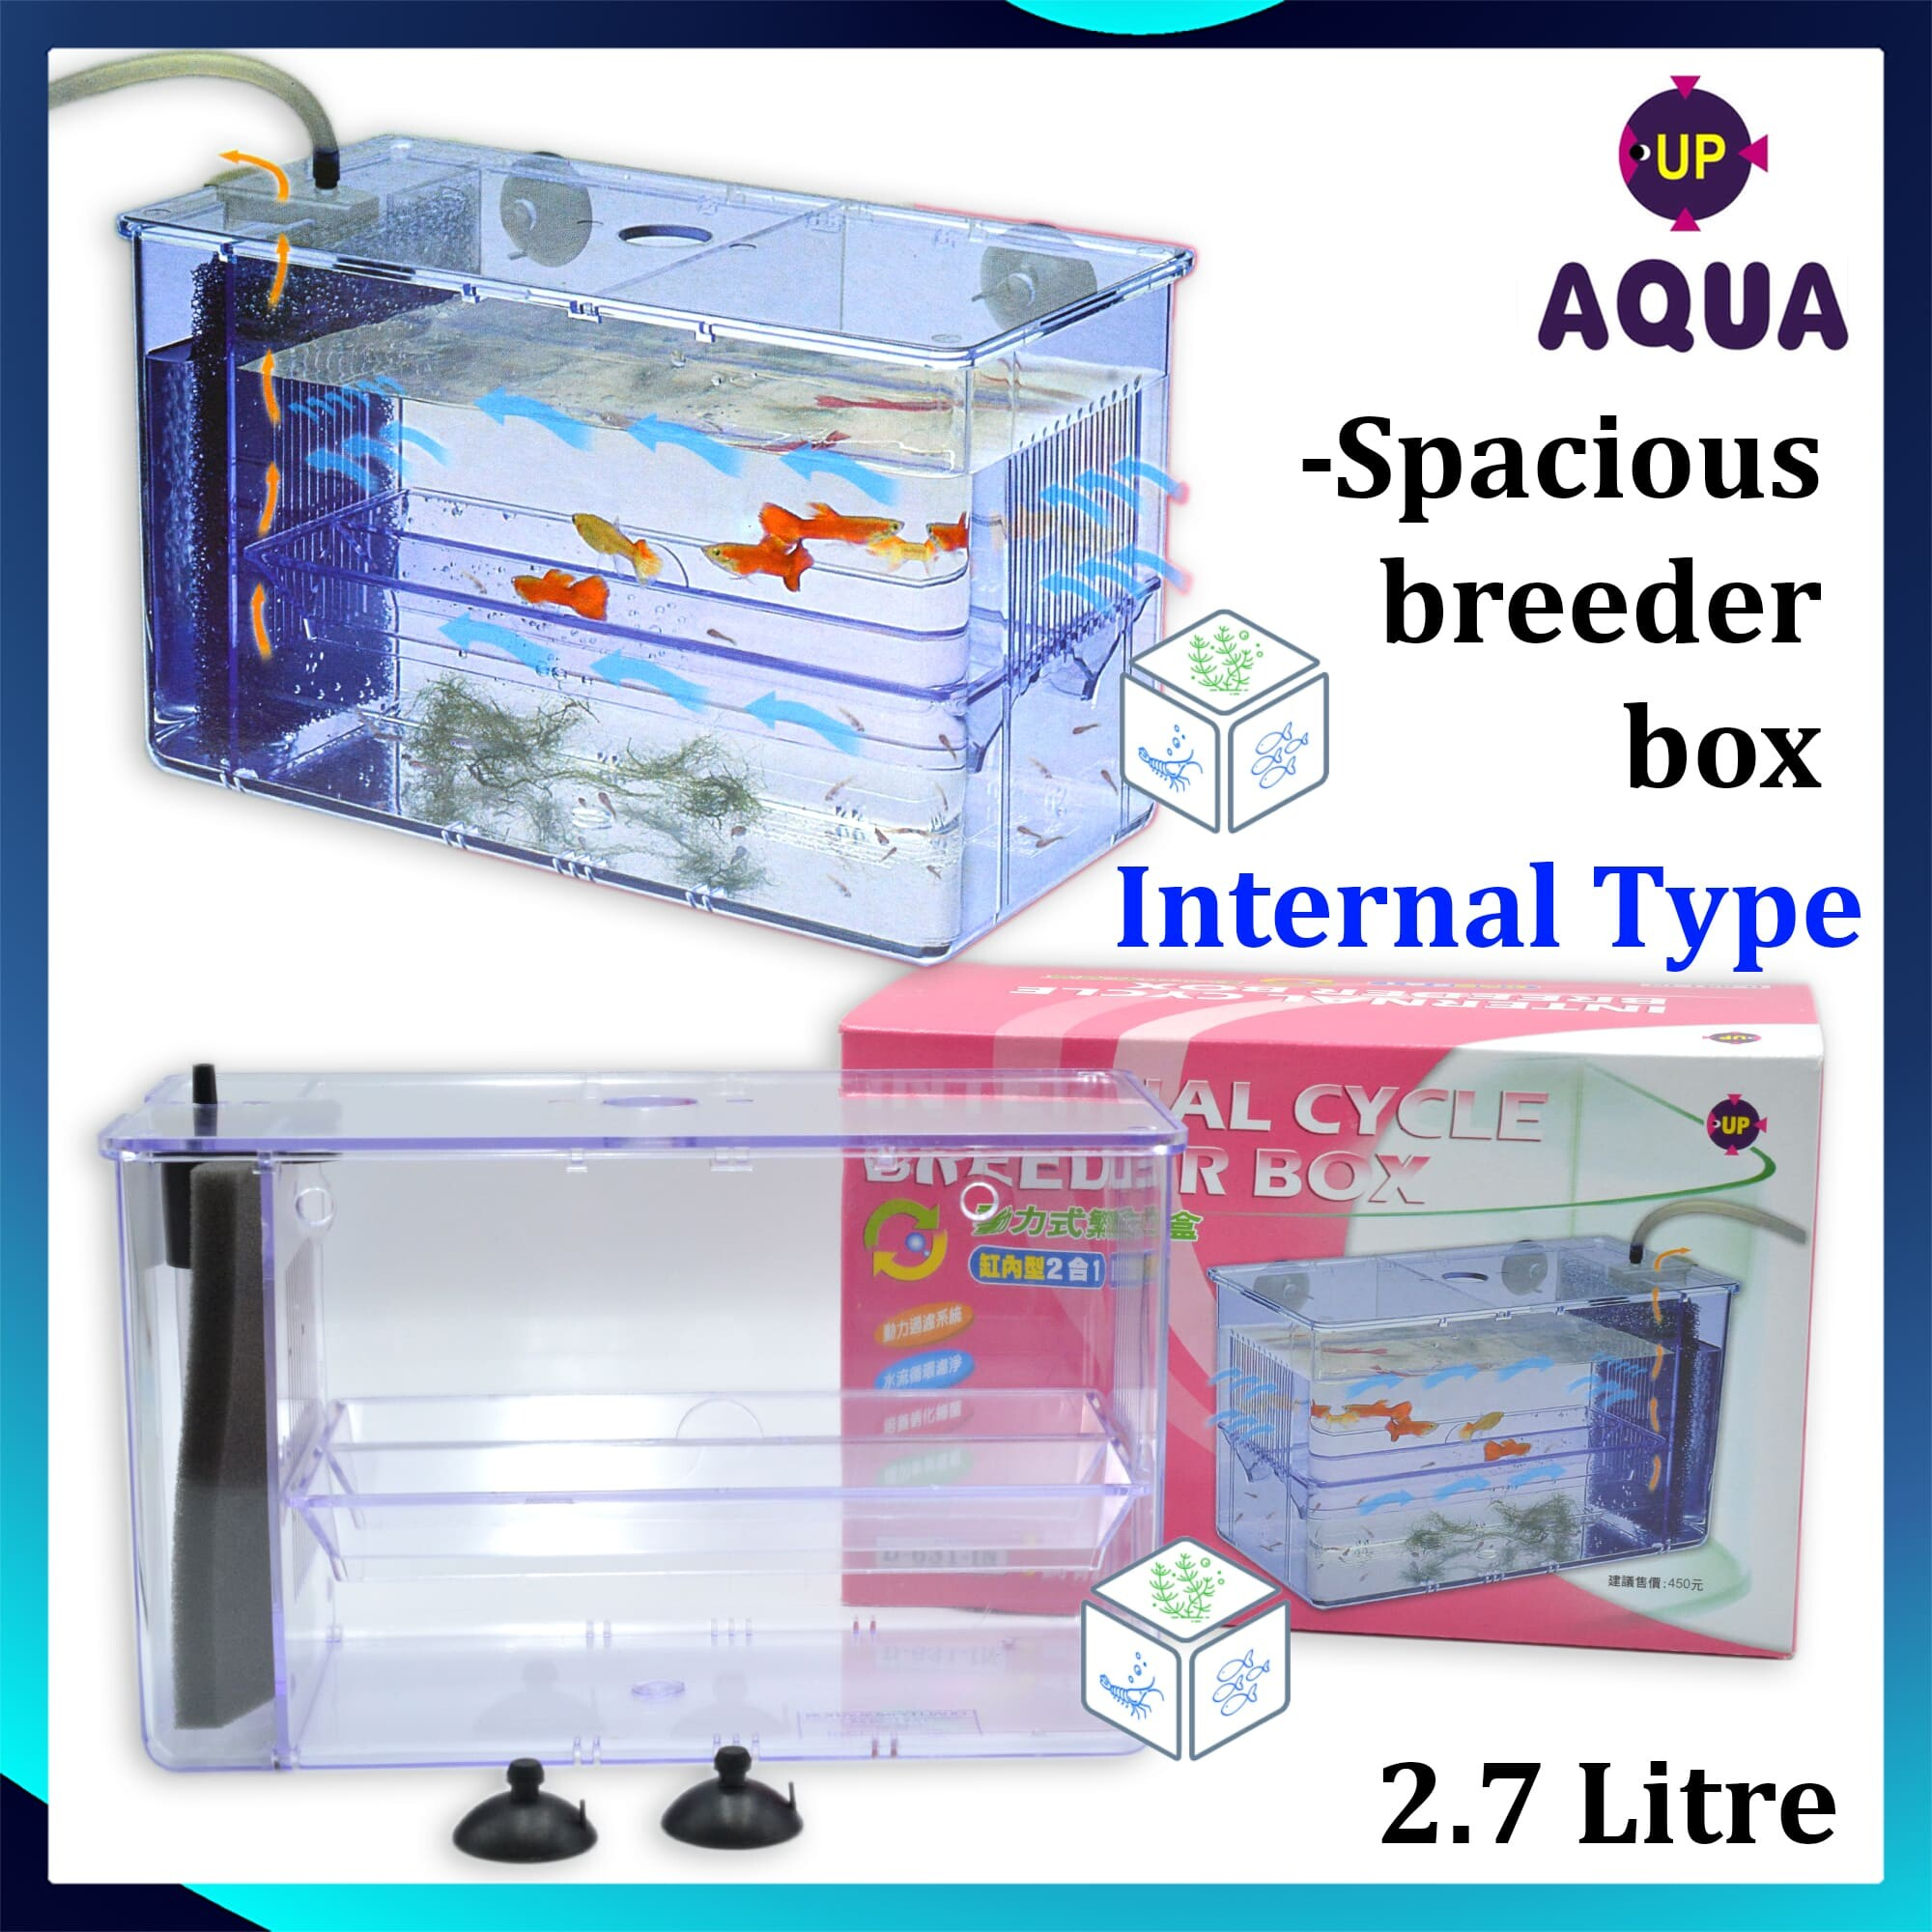 Up Aqua 2 IN 1 Aquarium Internal Cycle Breeding Box